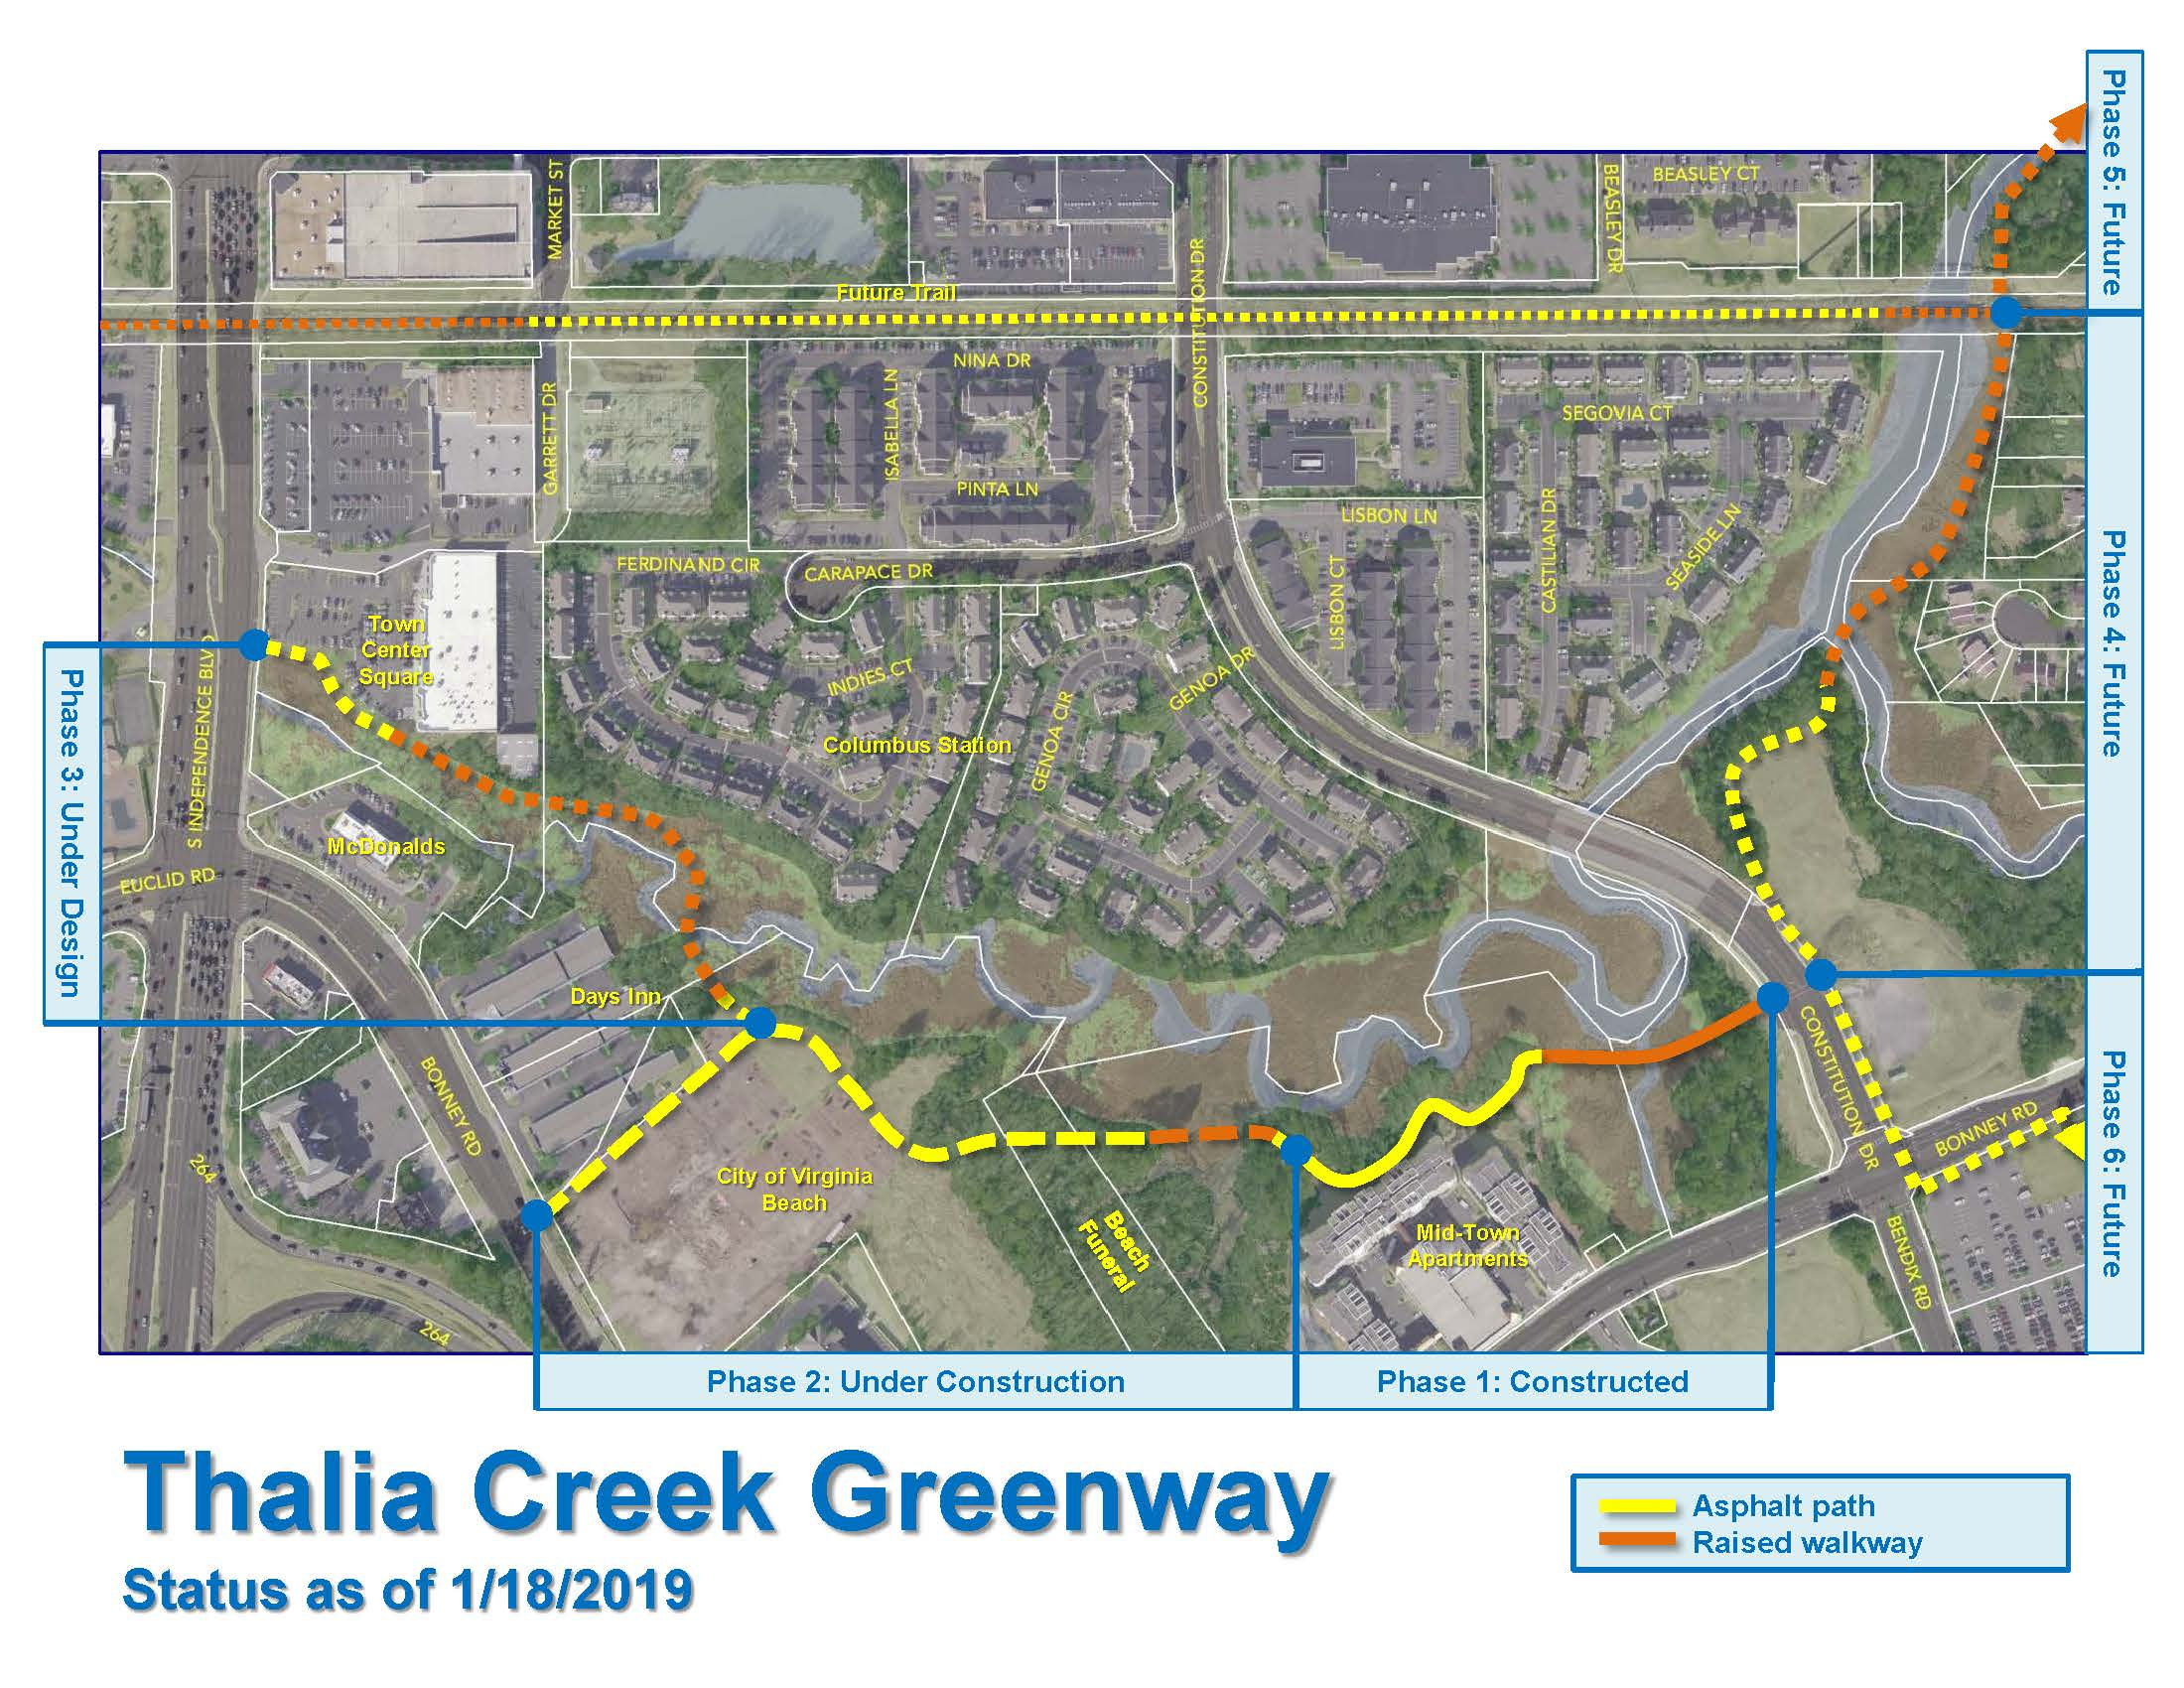 Thalia Creek Greenway